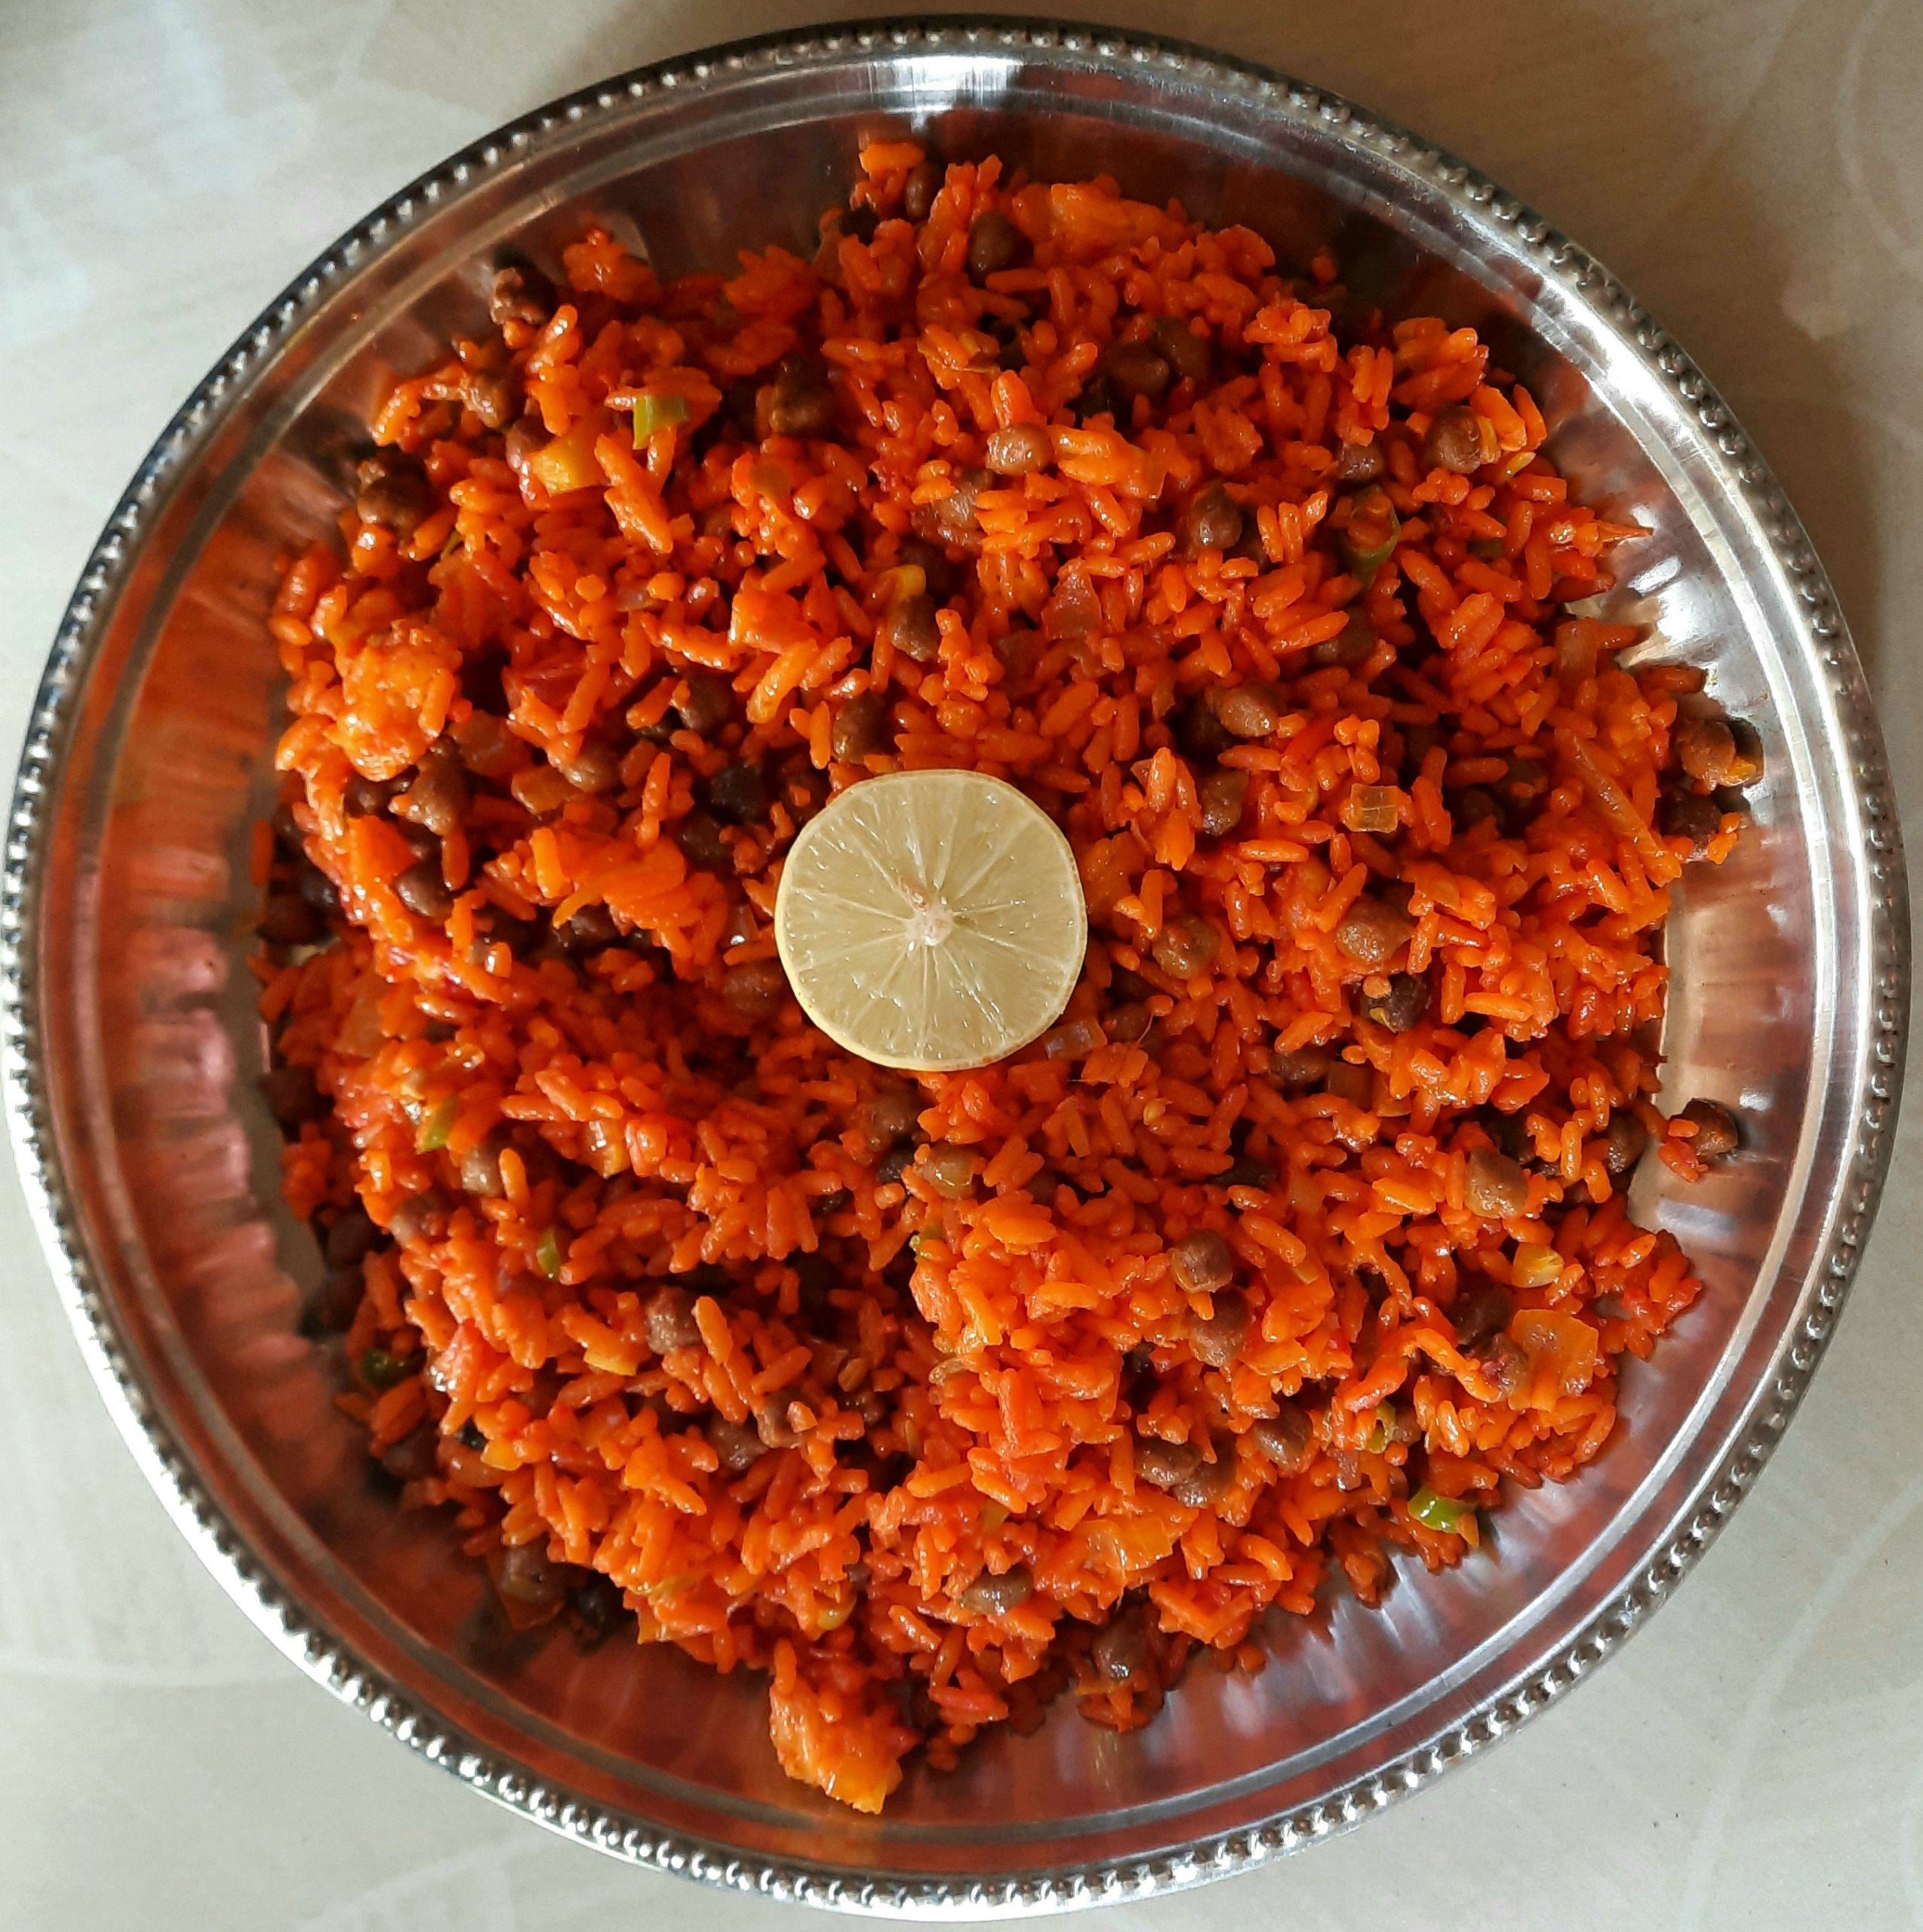 Homemade spicy rice